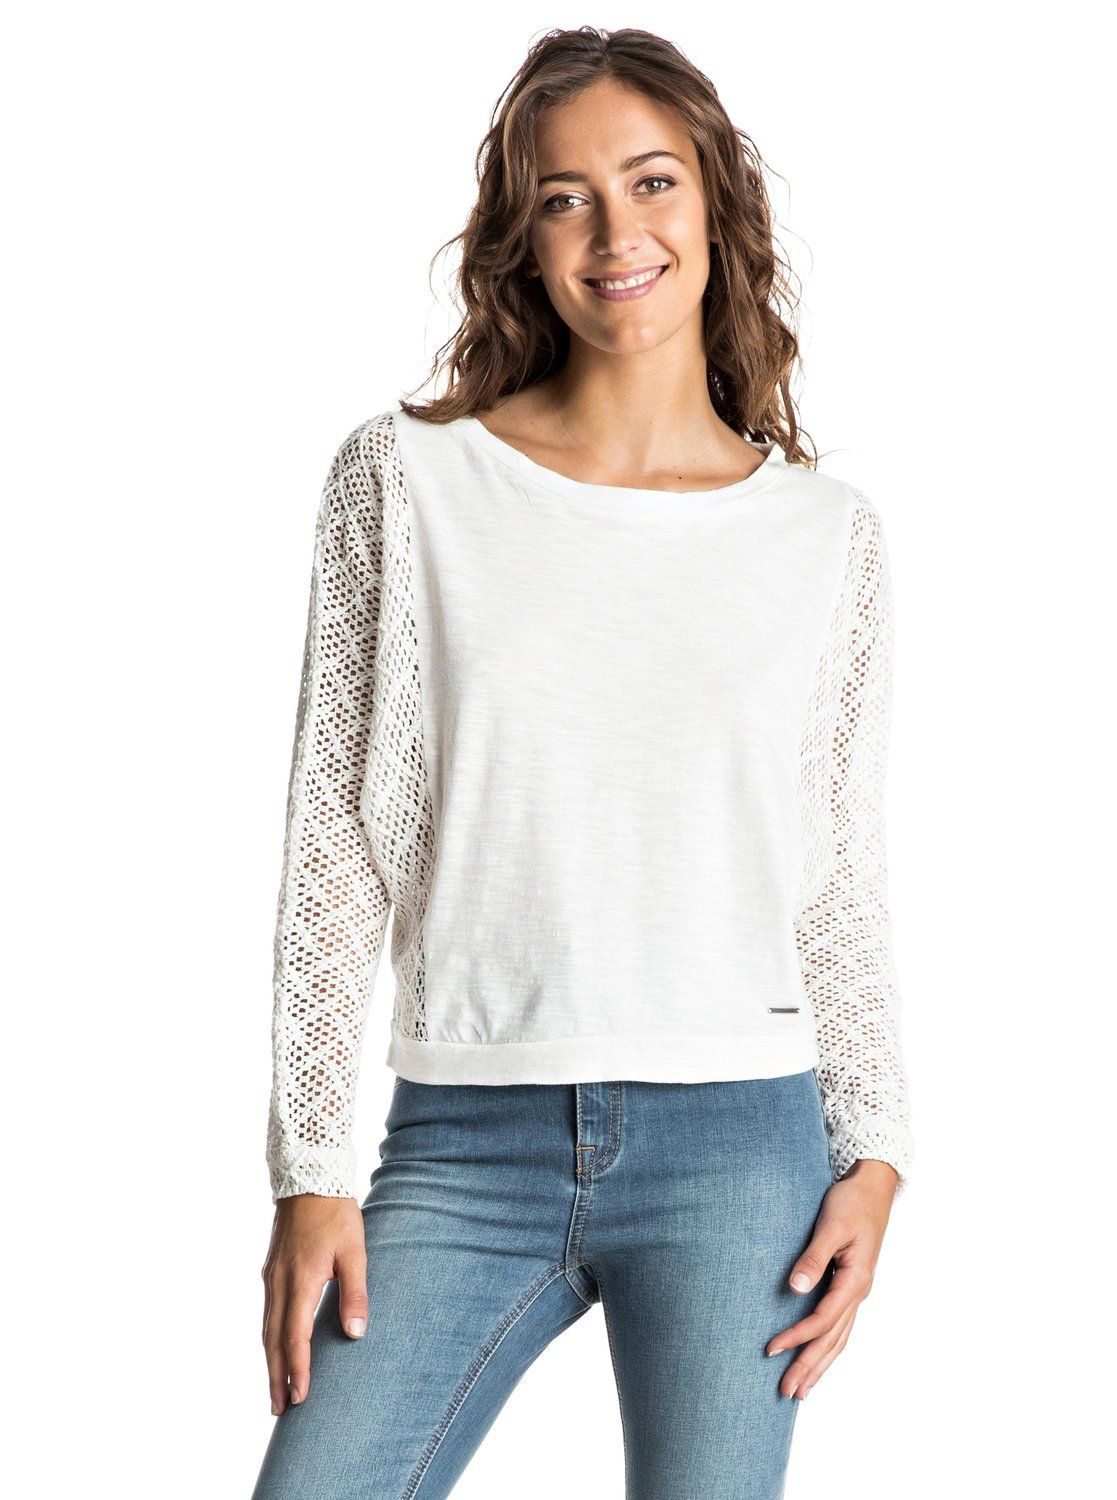 Talk To Me Lace - Cropped Long Sleeve Top